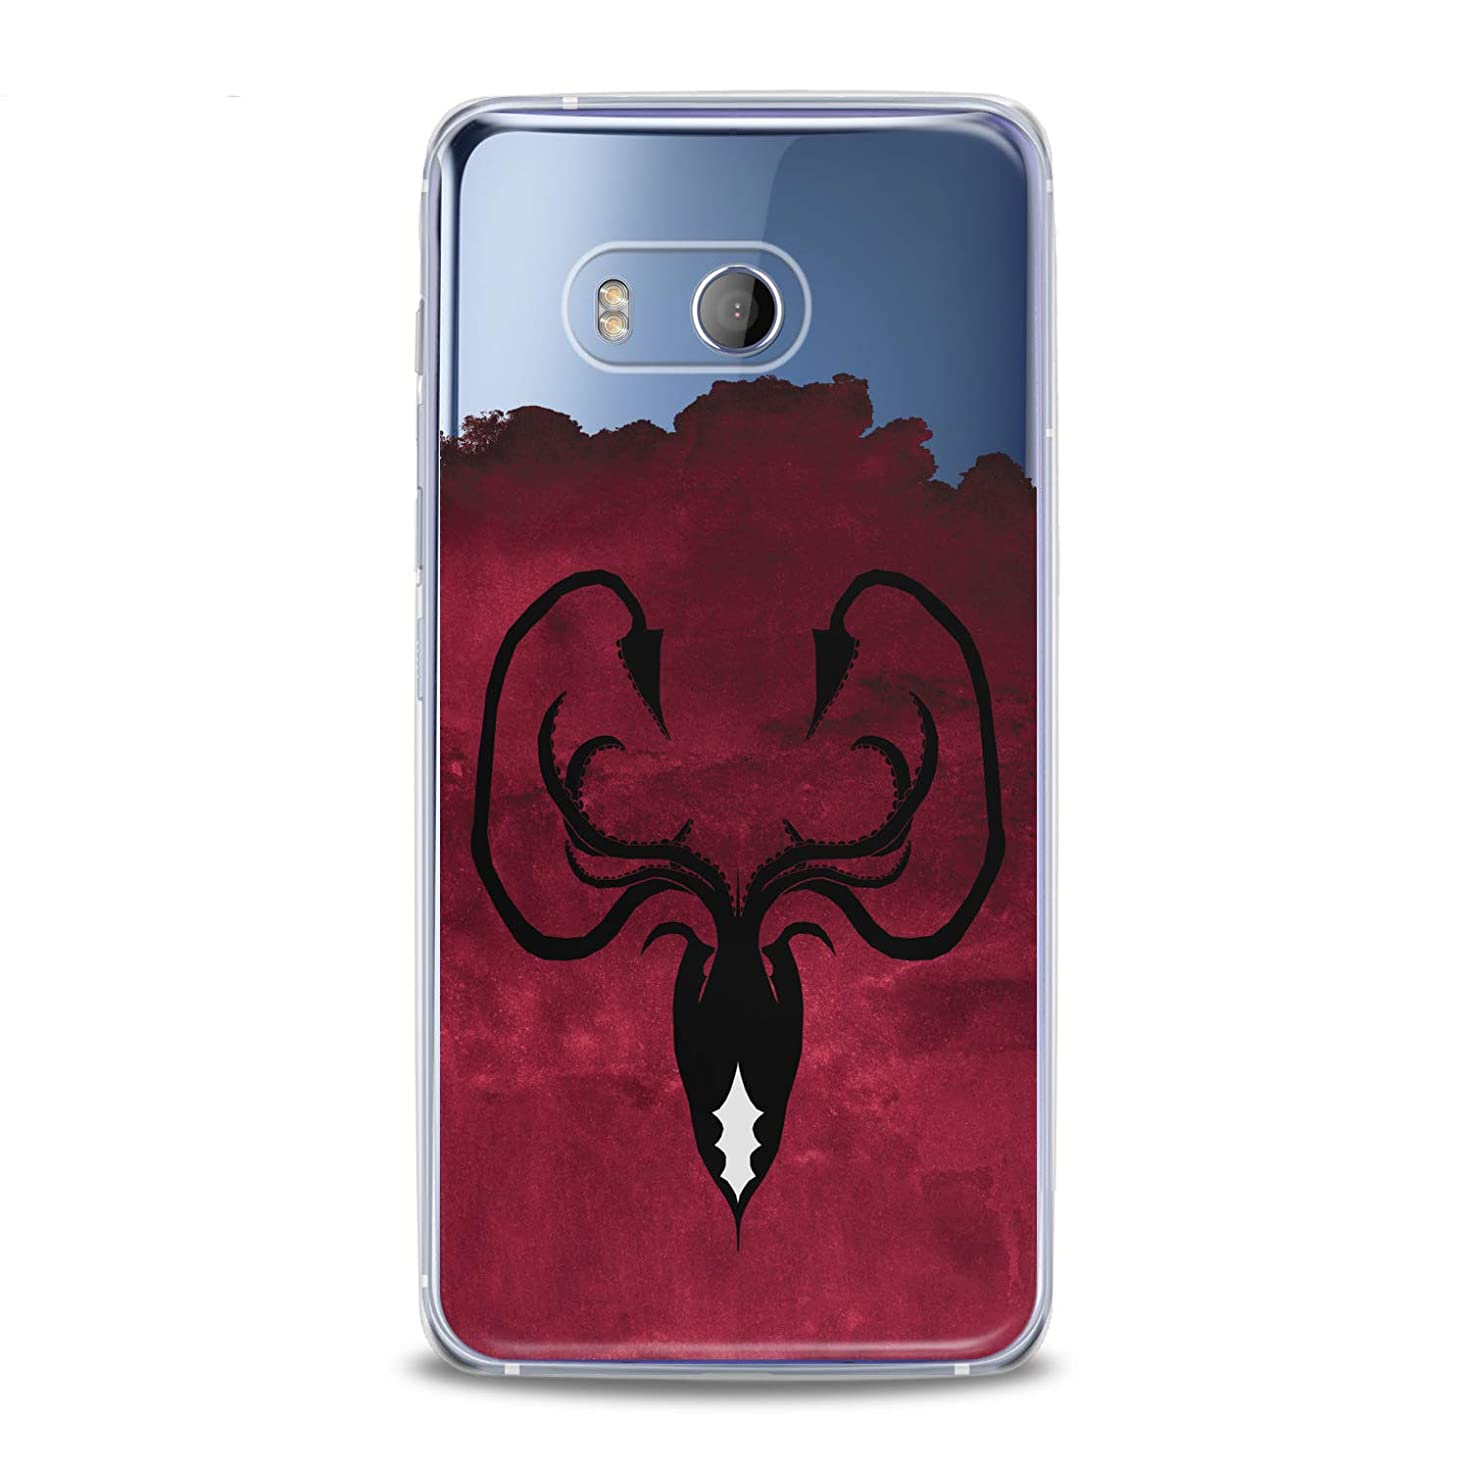 Lex Altern TPU Case for HTC Desire 12 Plus U12 Plus U11 Life Dual Sim Greyjoy Flexible Octopus Symbol Gift Smooth Black Print Slim fit Game of Thrones Cover Soft Clear Red Design Kingdoms Lightweight